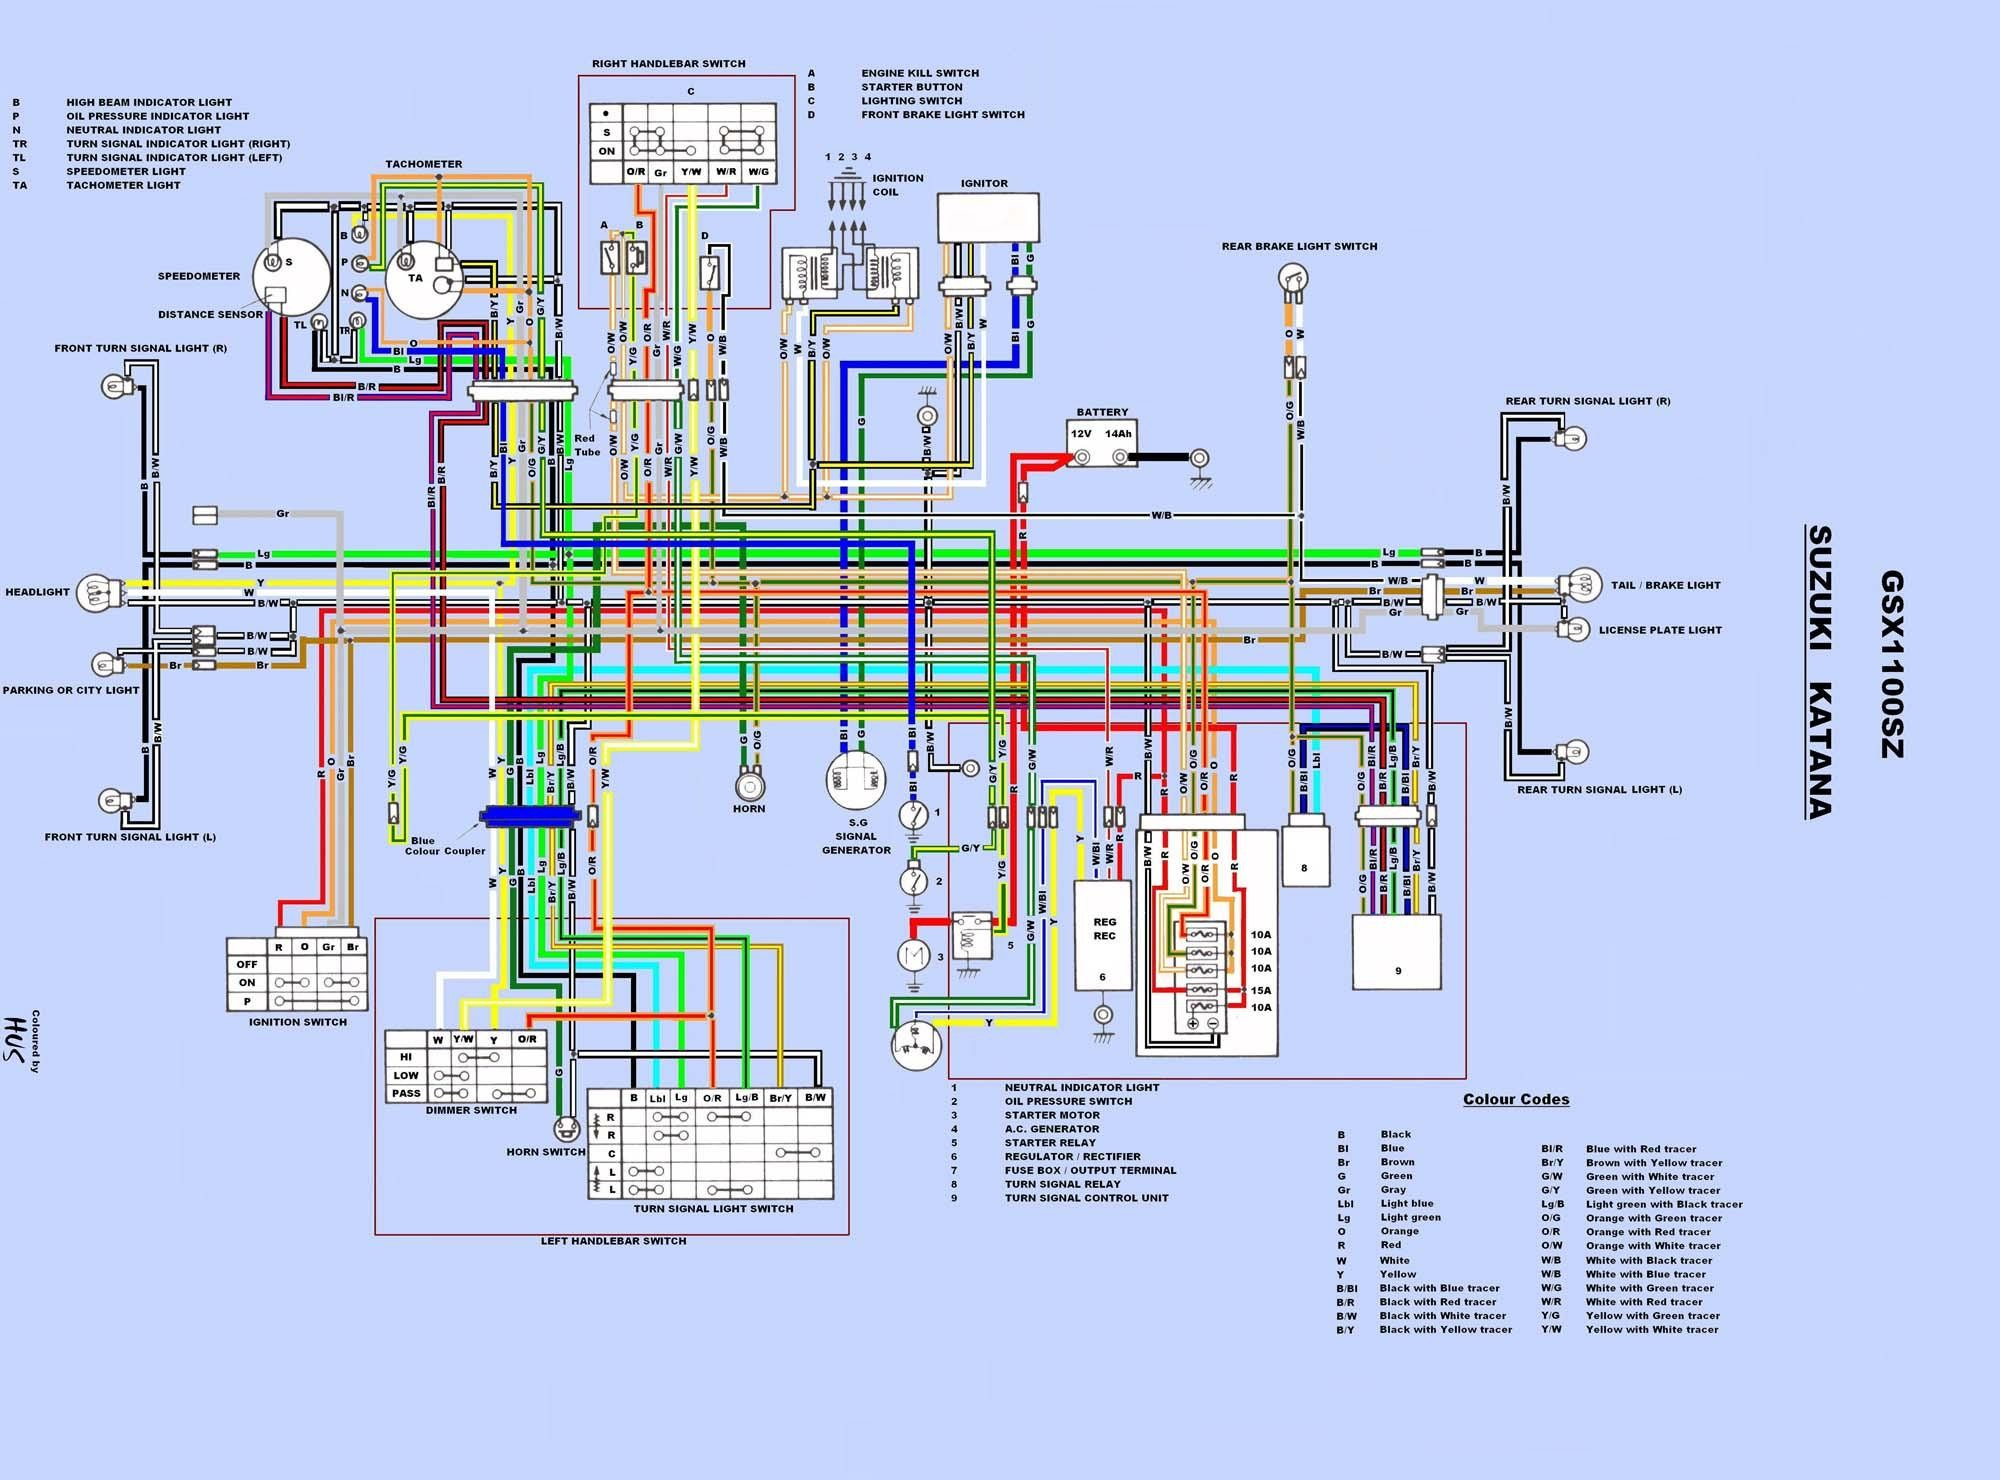 hight resolution of diagrama suzuki gsx600f gsx750f wiring diagram blogsuzuki gsx600f wiring diagram wiring diagram local diagrama suzuki gsx600f